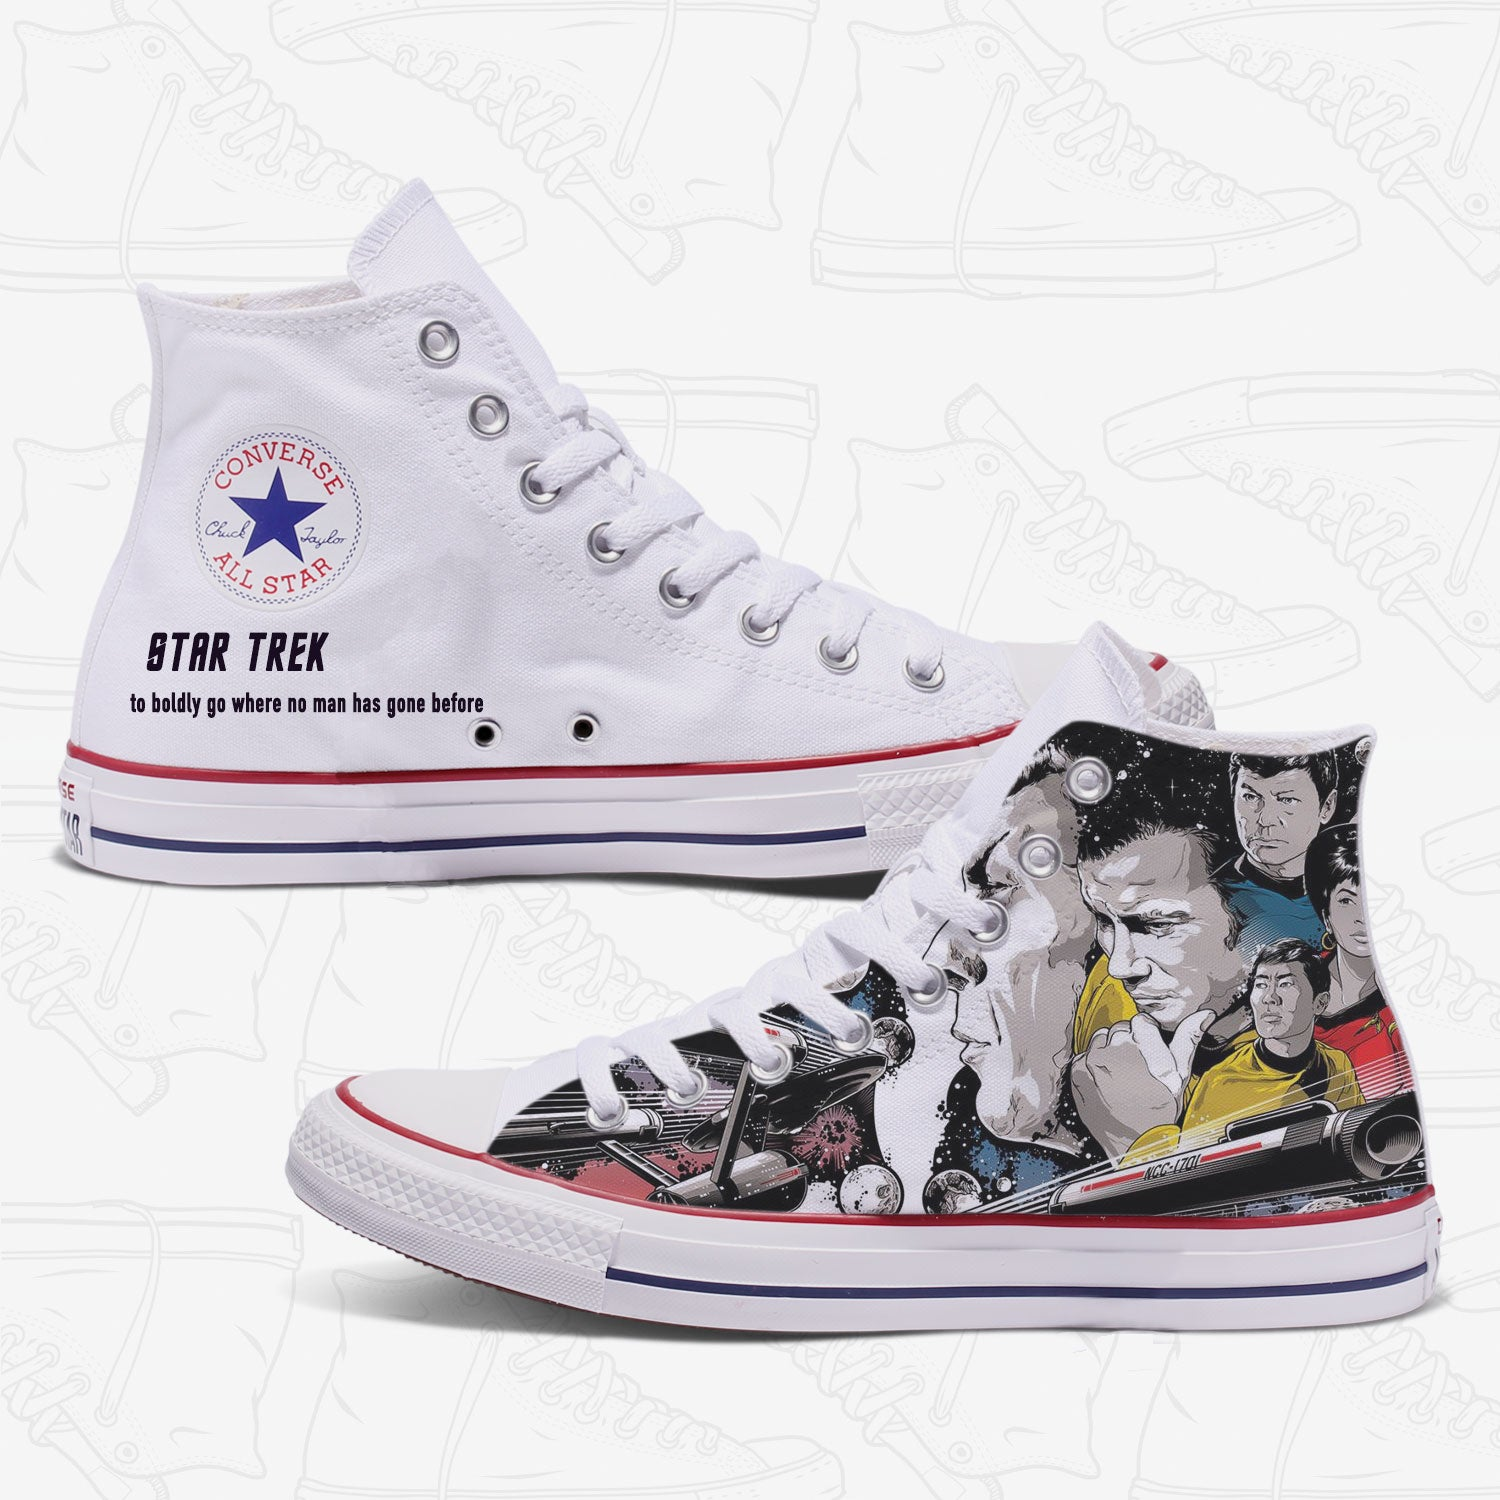 Star Trek Custom Converse